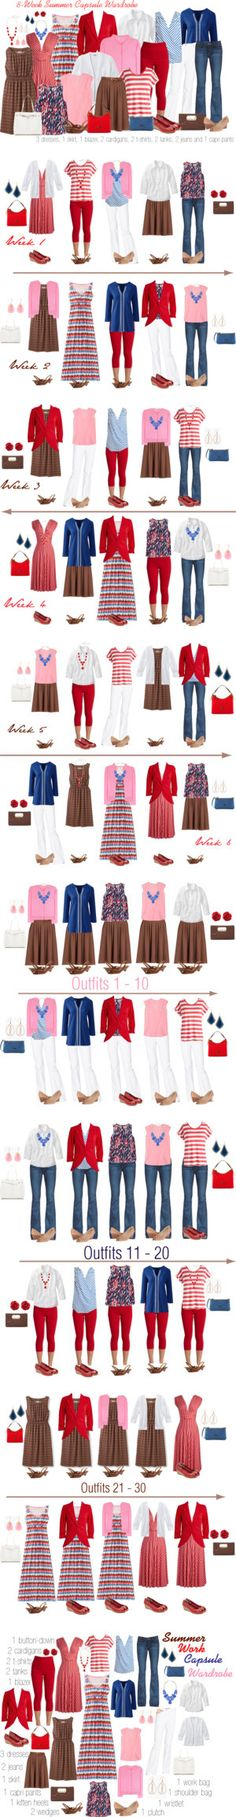 Summer Work Capsule Wardrobe: Pink, Brown, Red & Blue by kristin727 on Polyvore.